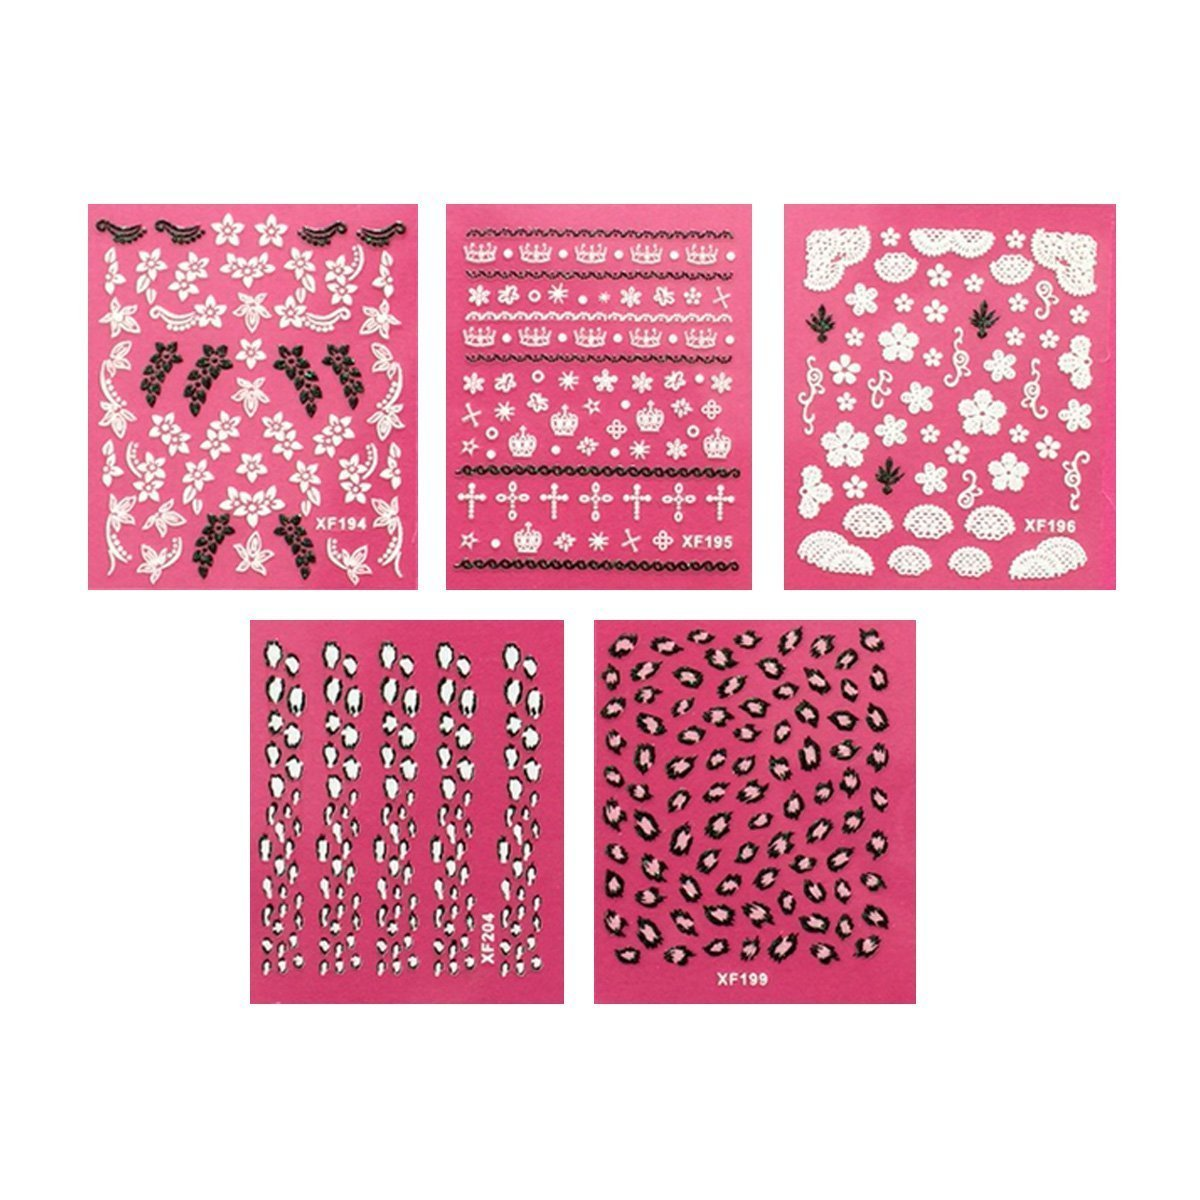 Wrapables Leopard Print, Floral, Crowns and Crosses Nail Art Self-Adhesive Stickers Nail Decals, Set of 5